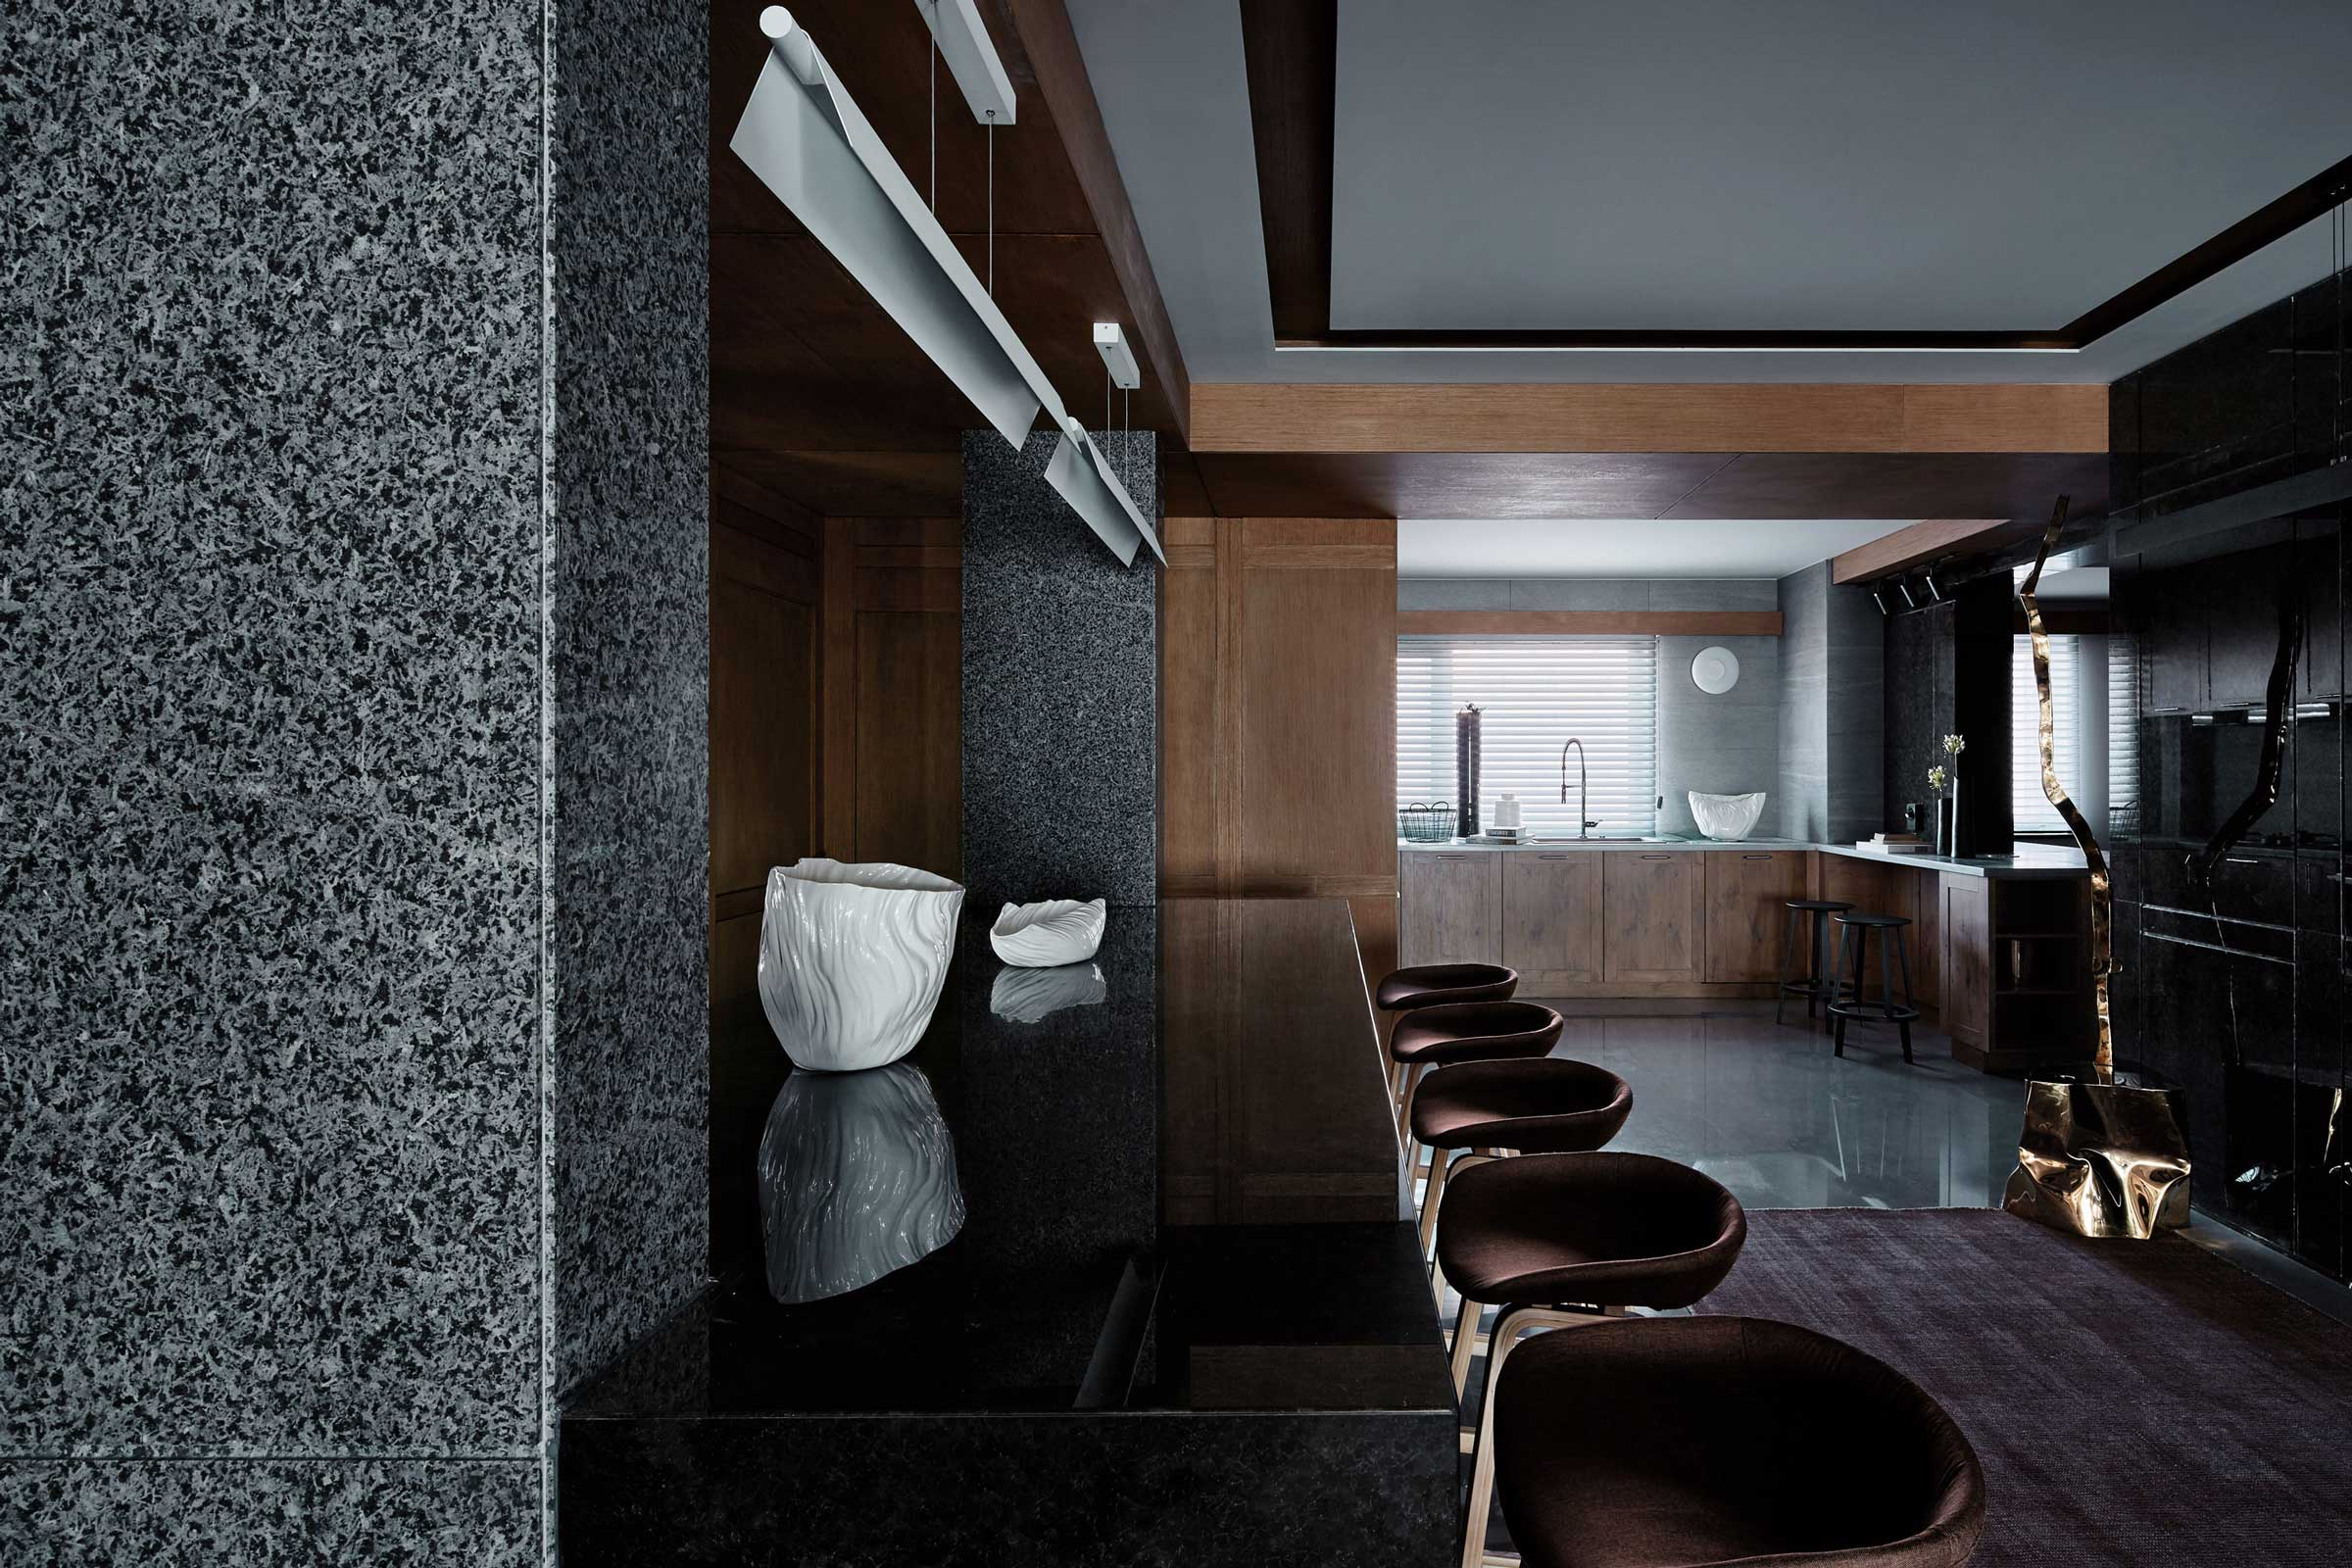 lane-house-ARCHISTRY-nolan-chao-08-dining-area.jpg